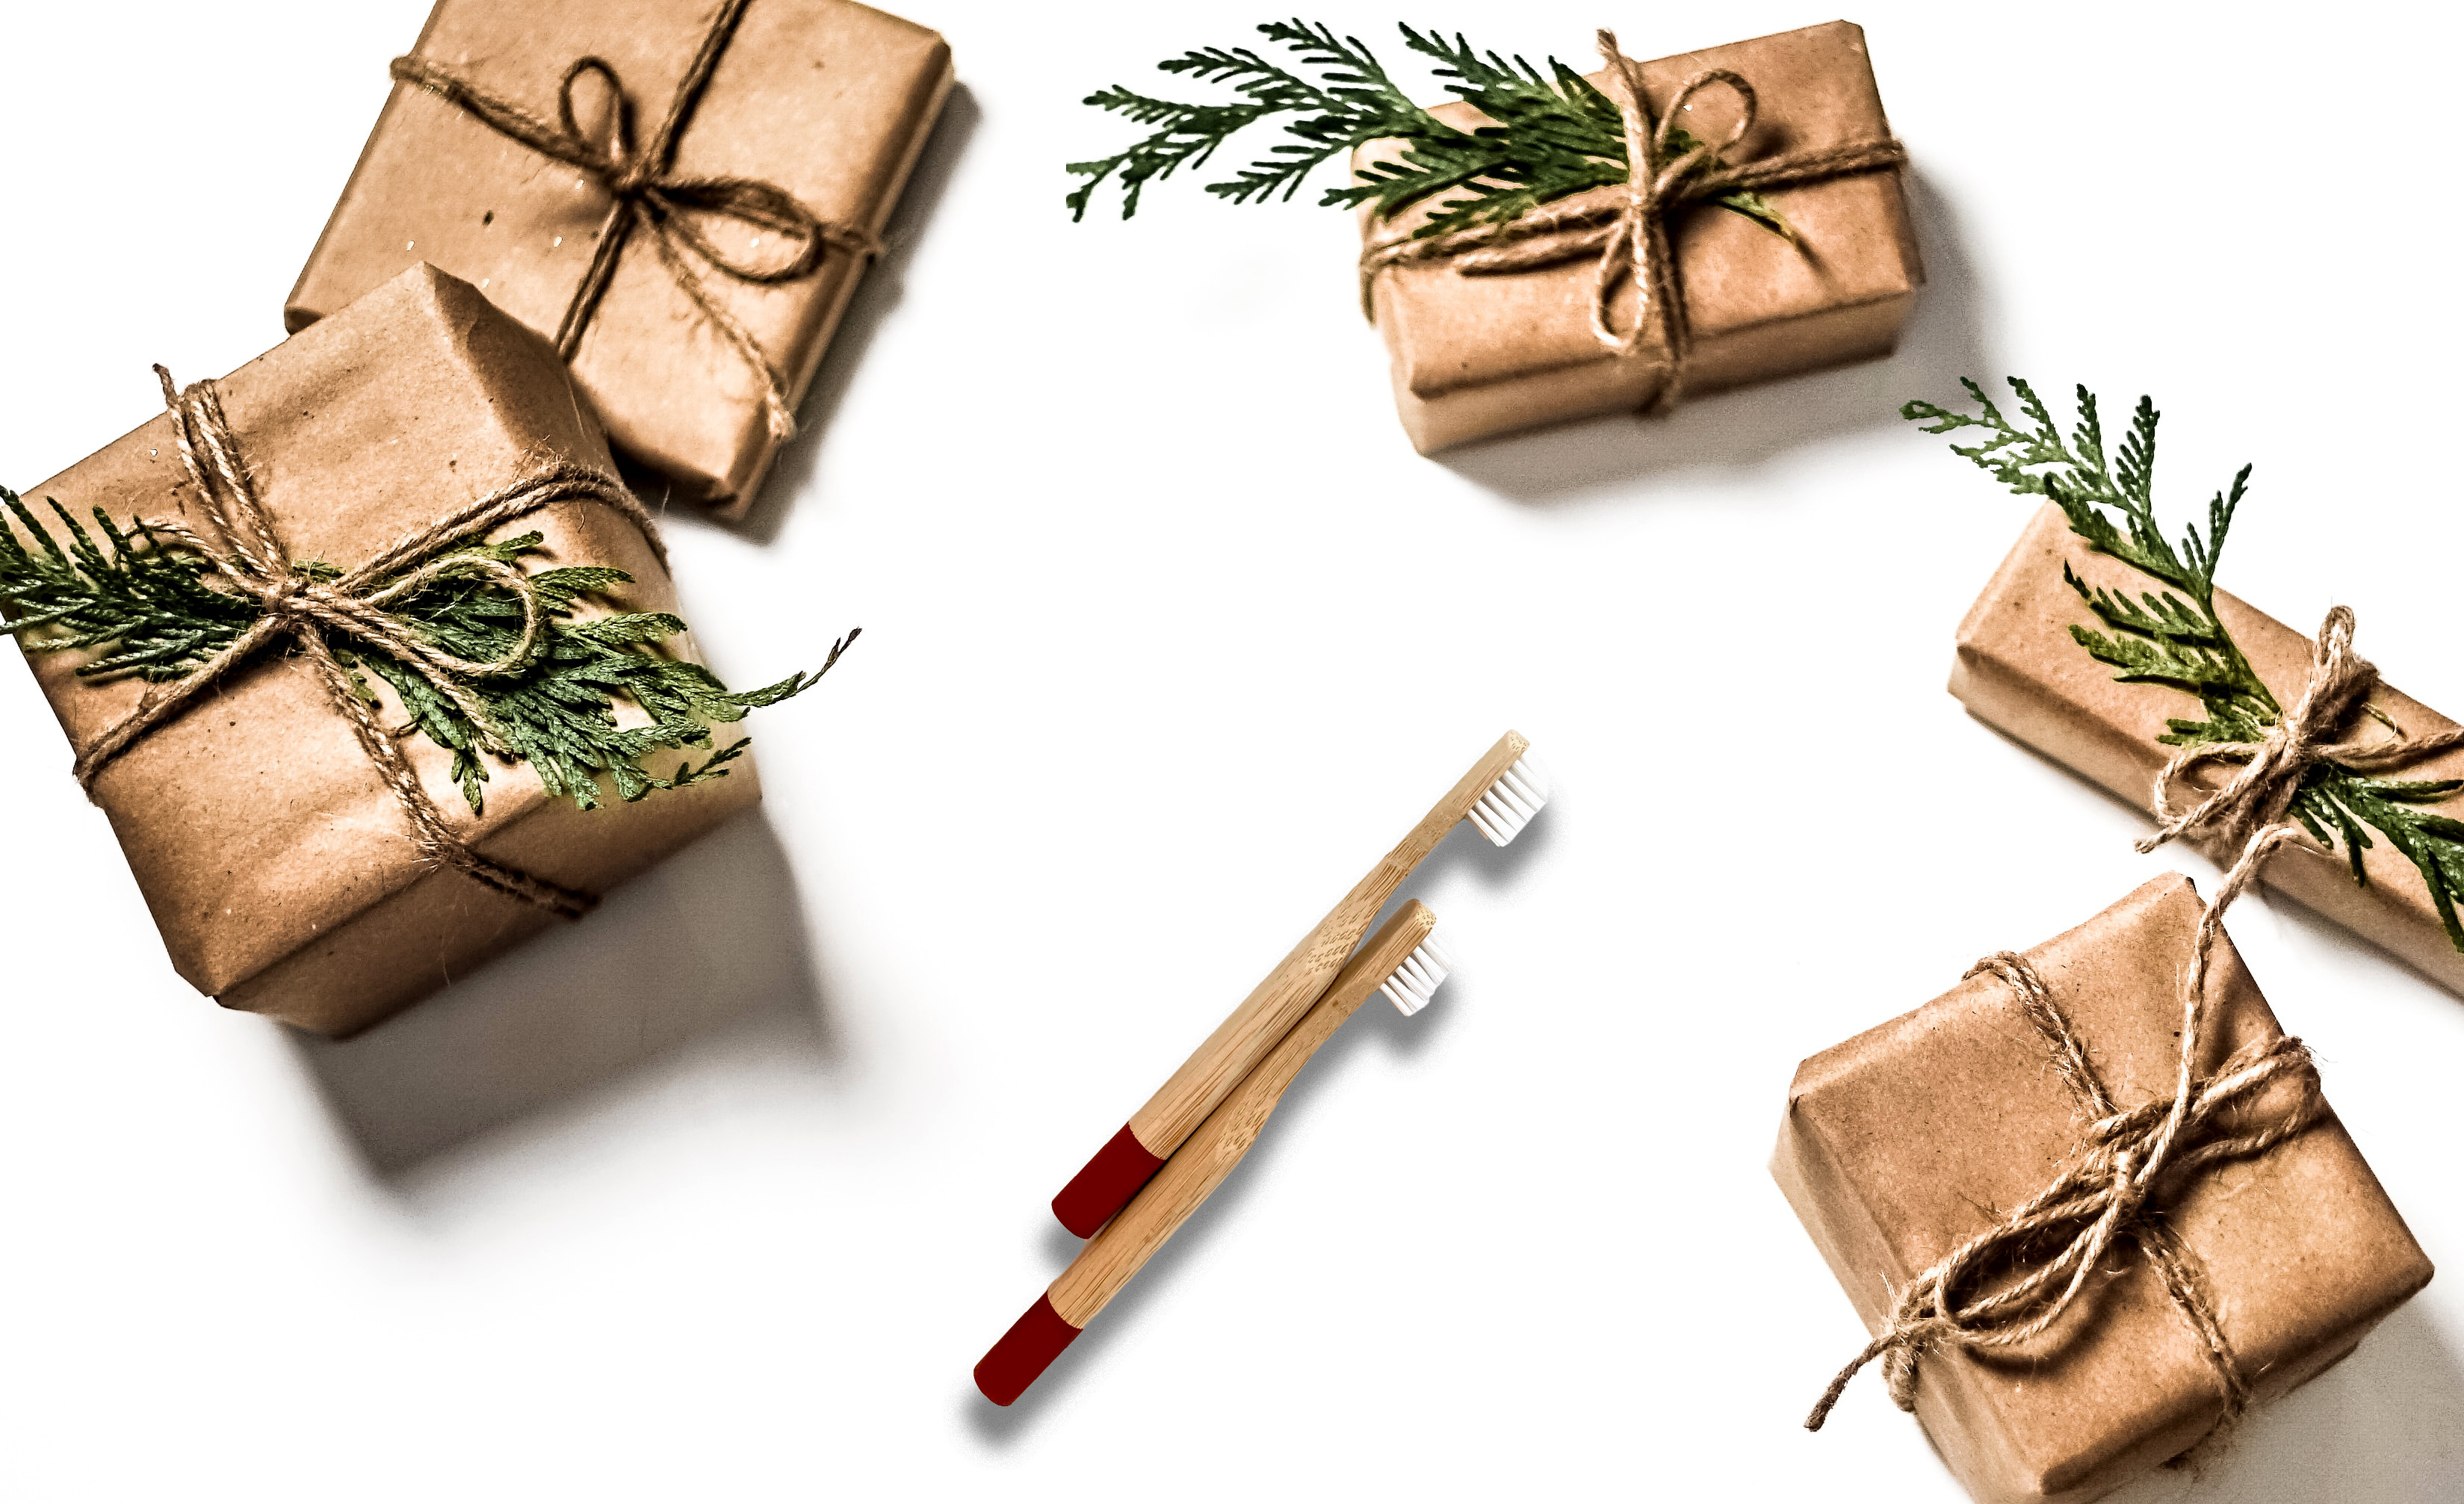 bamboo toothbrush surrounded by presents wrapped in kraft paper and tied with twine and pine boughs